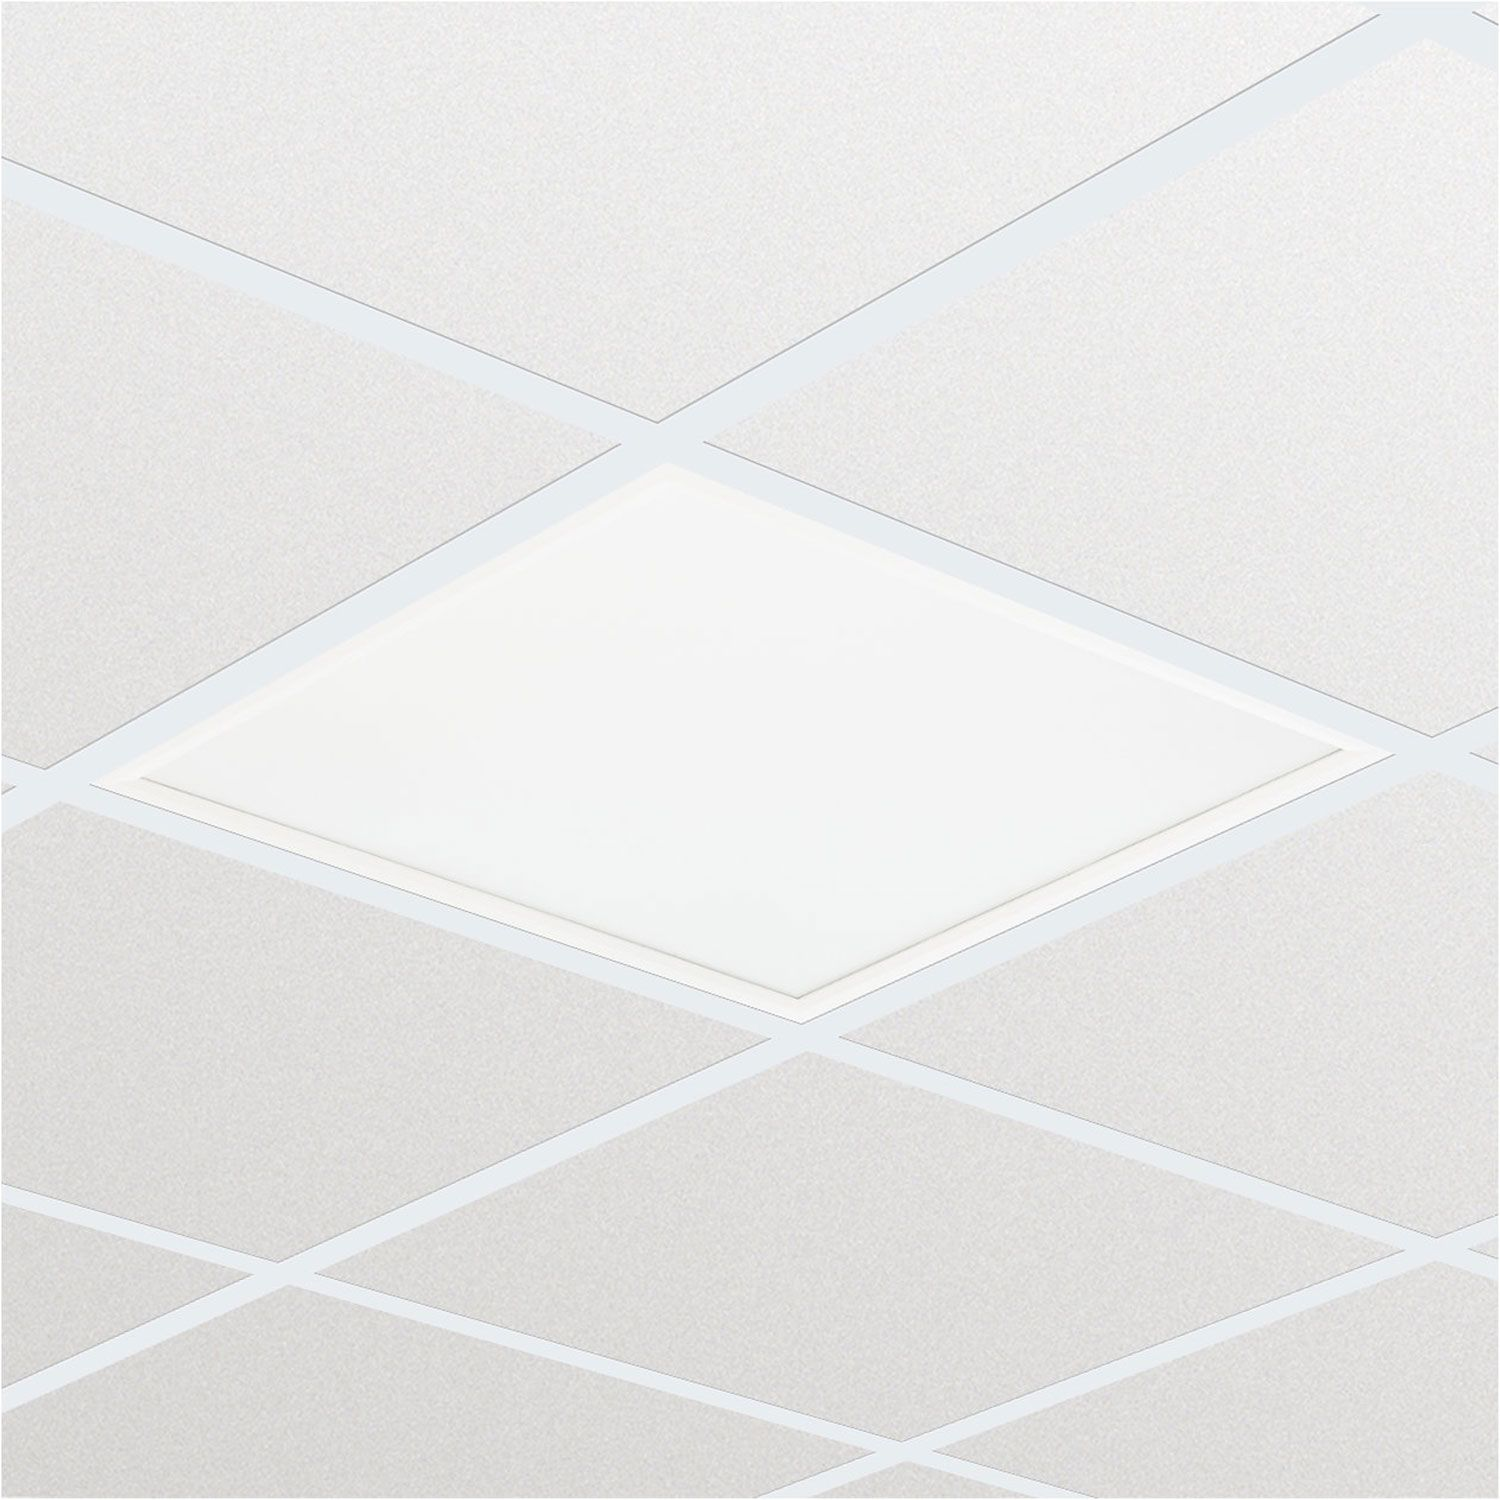 Philips Panel LED CoreLine RC132V G4 60x60cm 4000K 3600lm UGR <19 | Módulo de Emergencia 3H - Blanco Frio - Reemplazo 4x18W